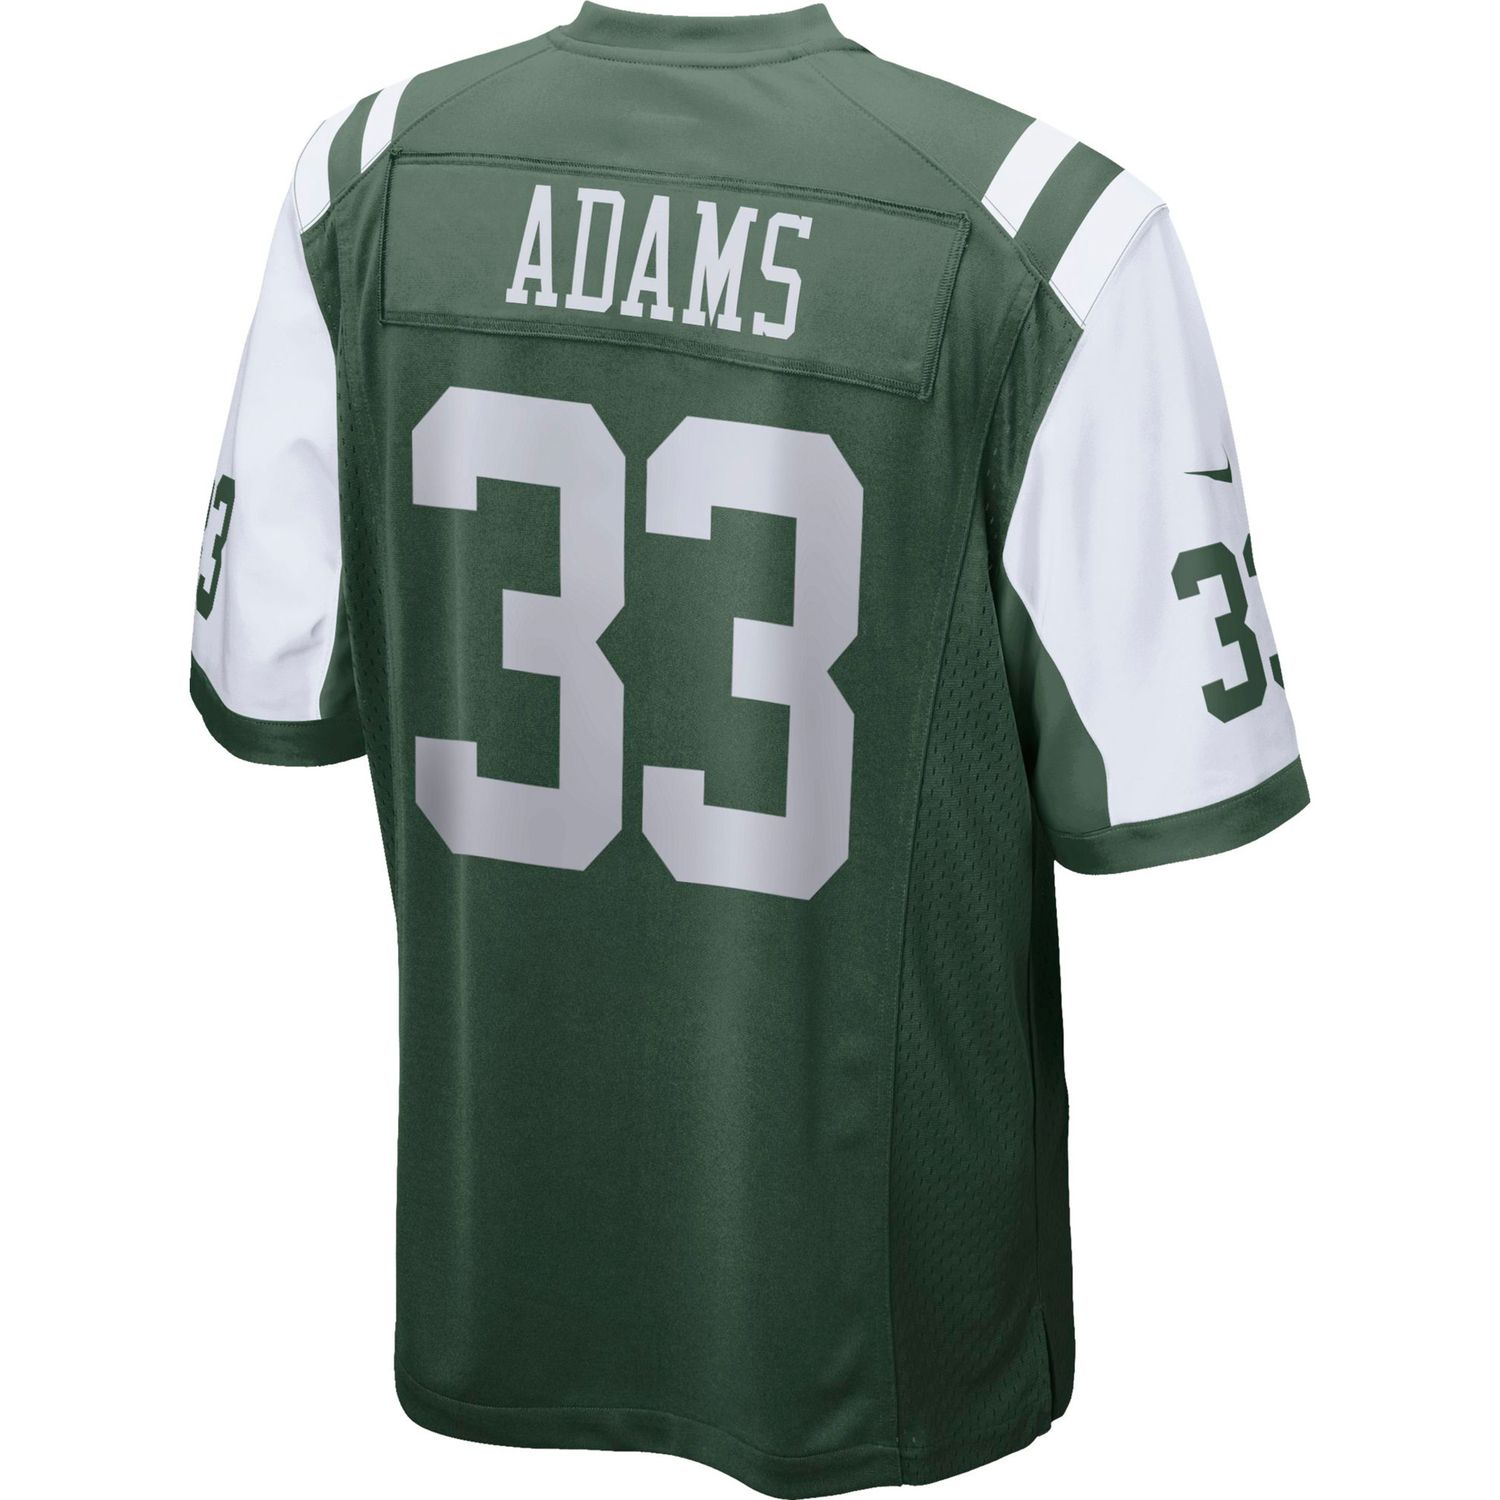 new york jets replica jersey